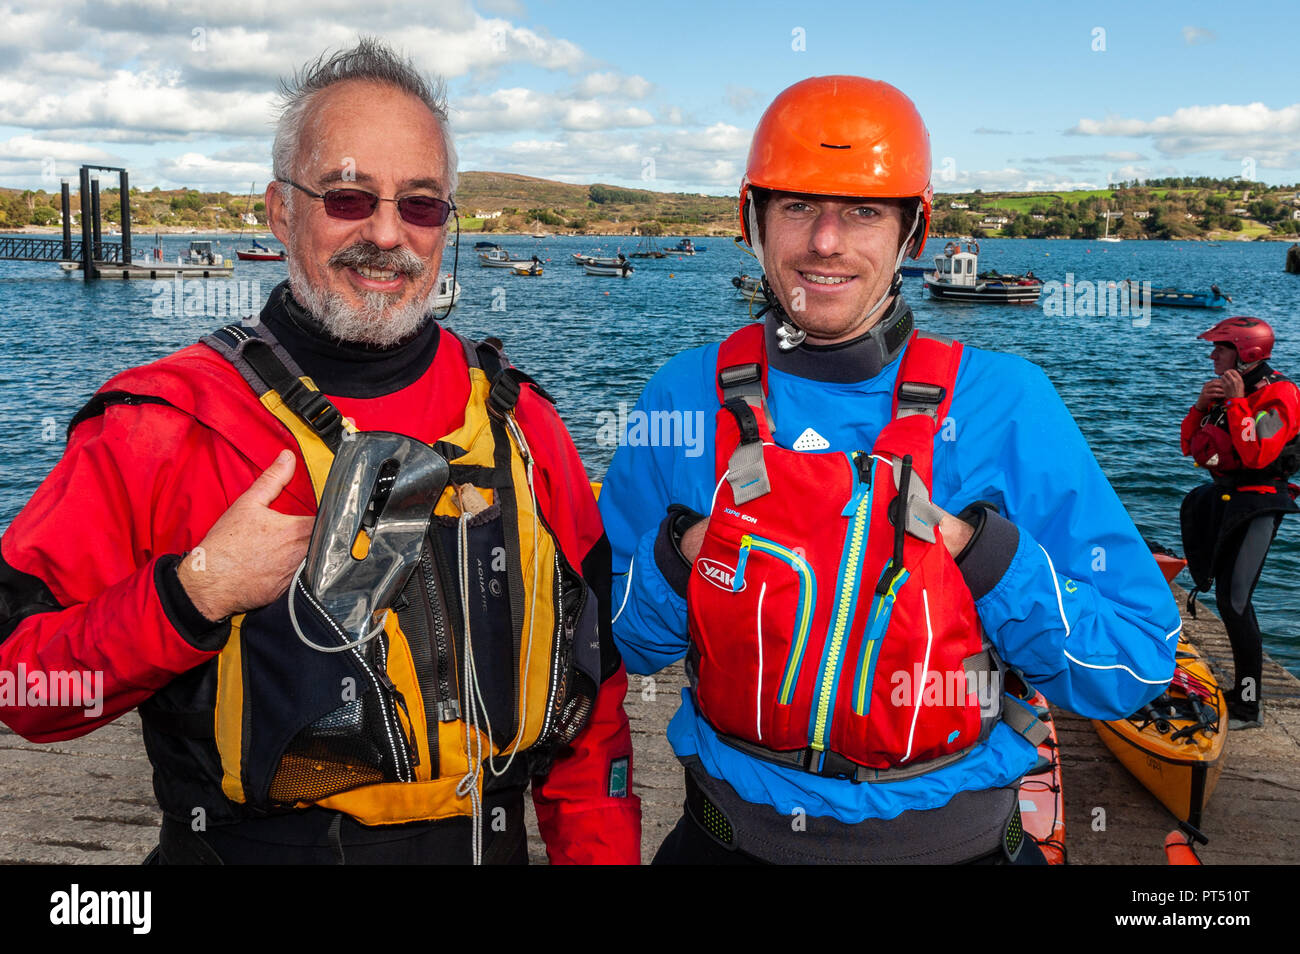 Schull, West Cork, Ireland. 6th Oct, 2018.  On a beautiful day in West Cork, Nick Depezay, Swords and Steven Darby, Cork prepare to go kayaking. Today's activities culminate this evening in a dinner dance at the Schull Harbour Hotel. Credit: Andy Gibson/Alamy Live News. - Stock Image